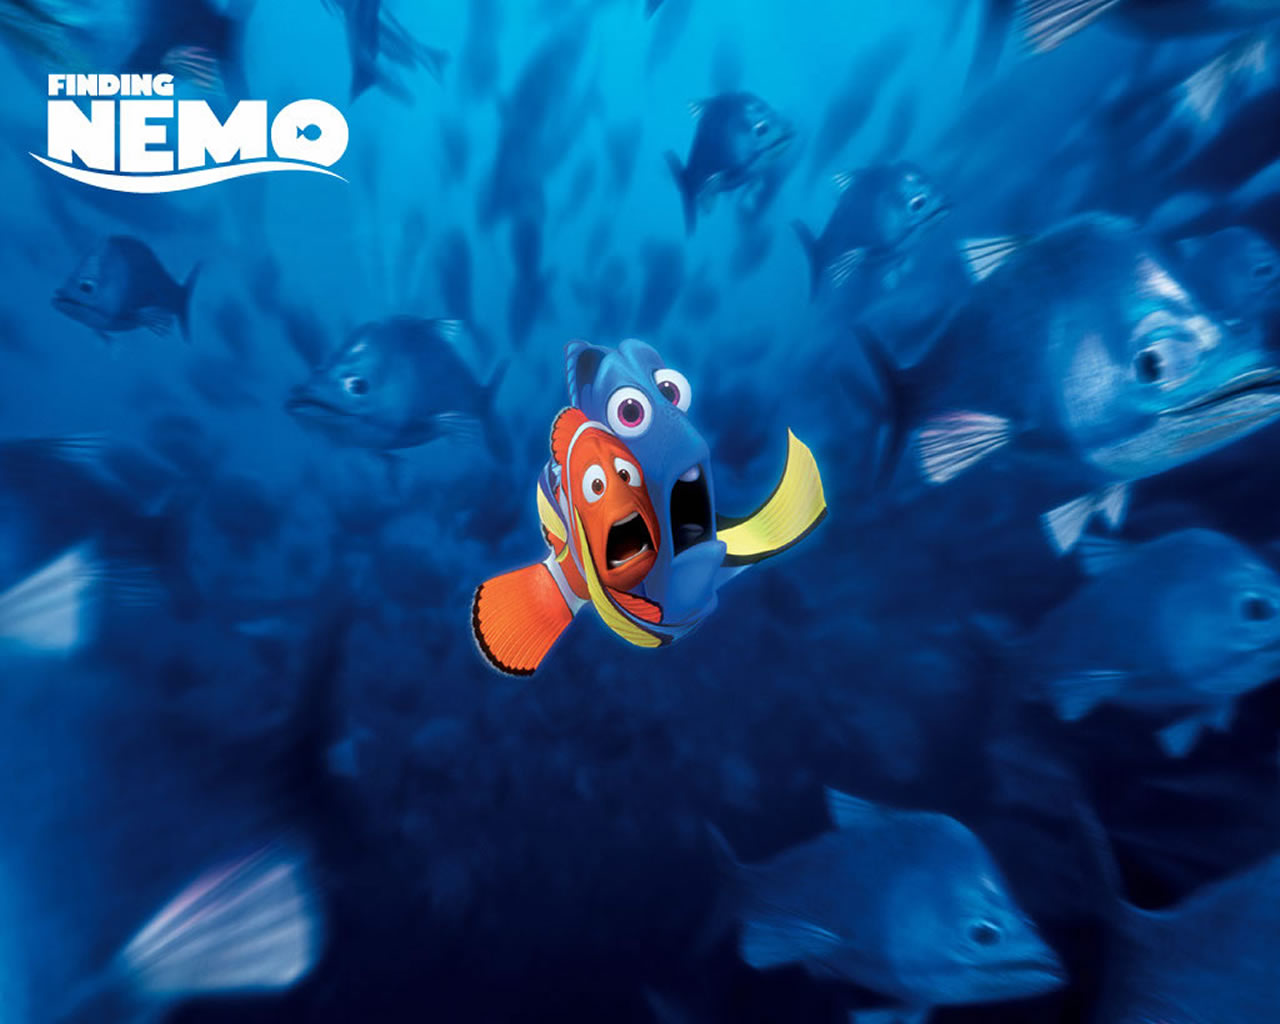 download wallpaper: Nemo en Dori wallpaper